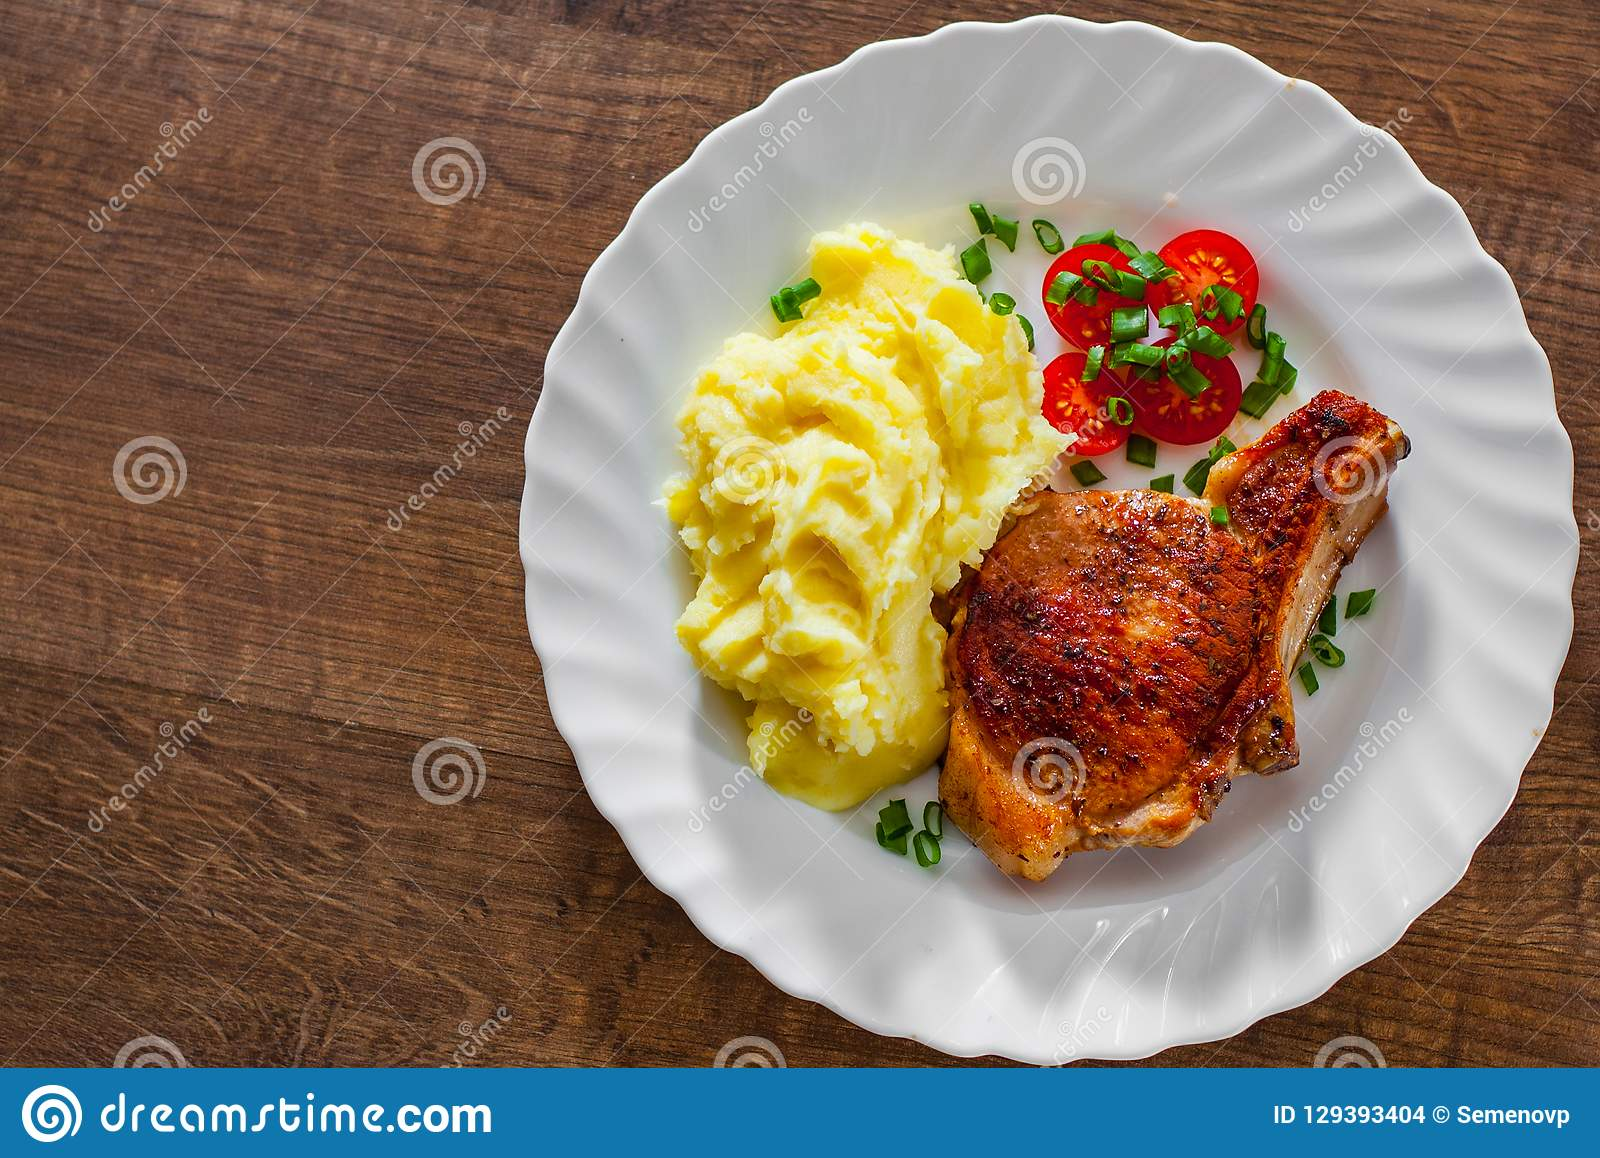 Grilled pork loin with mashed potatoes and salad in white plate on wooden table background with copy space. top view